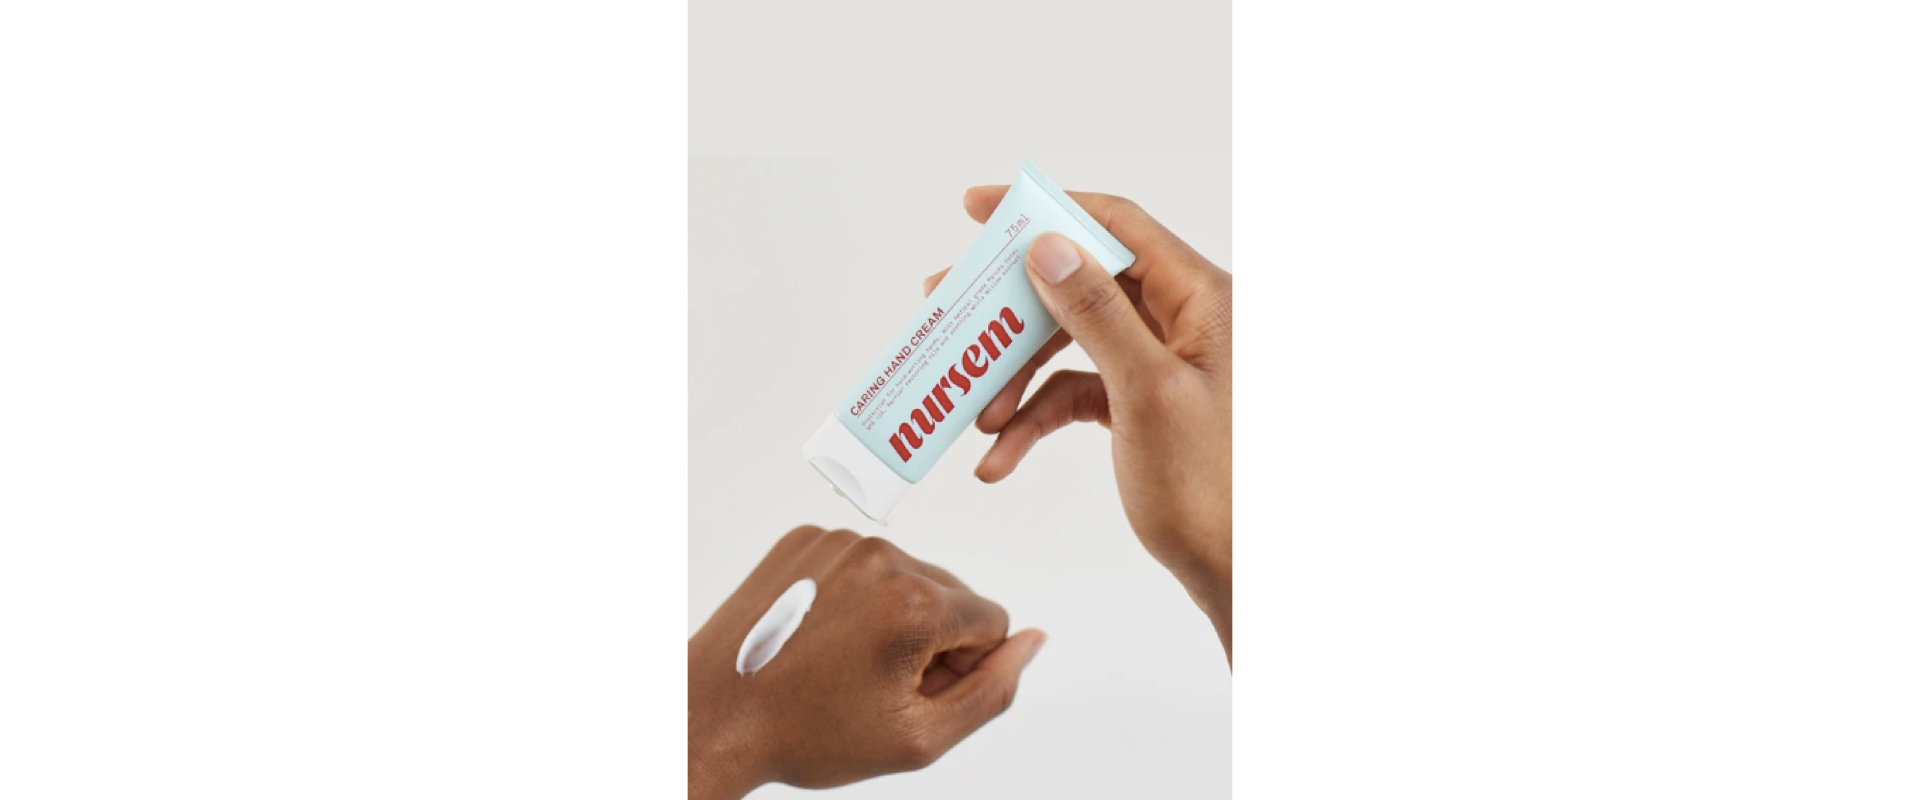 Imbarc Life in Lockdown Things to Improve Isolation Little Luxuries - Nursem hand cream